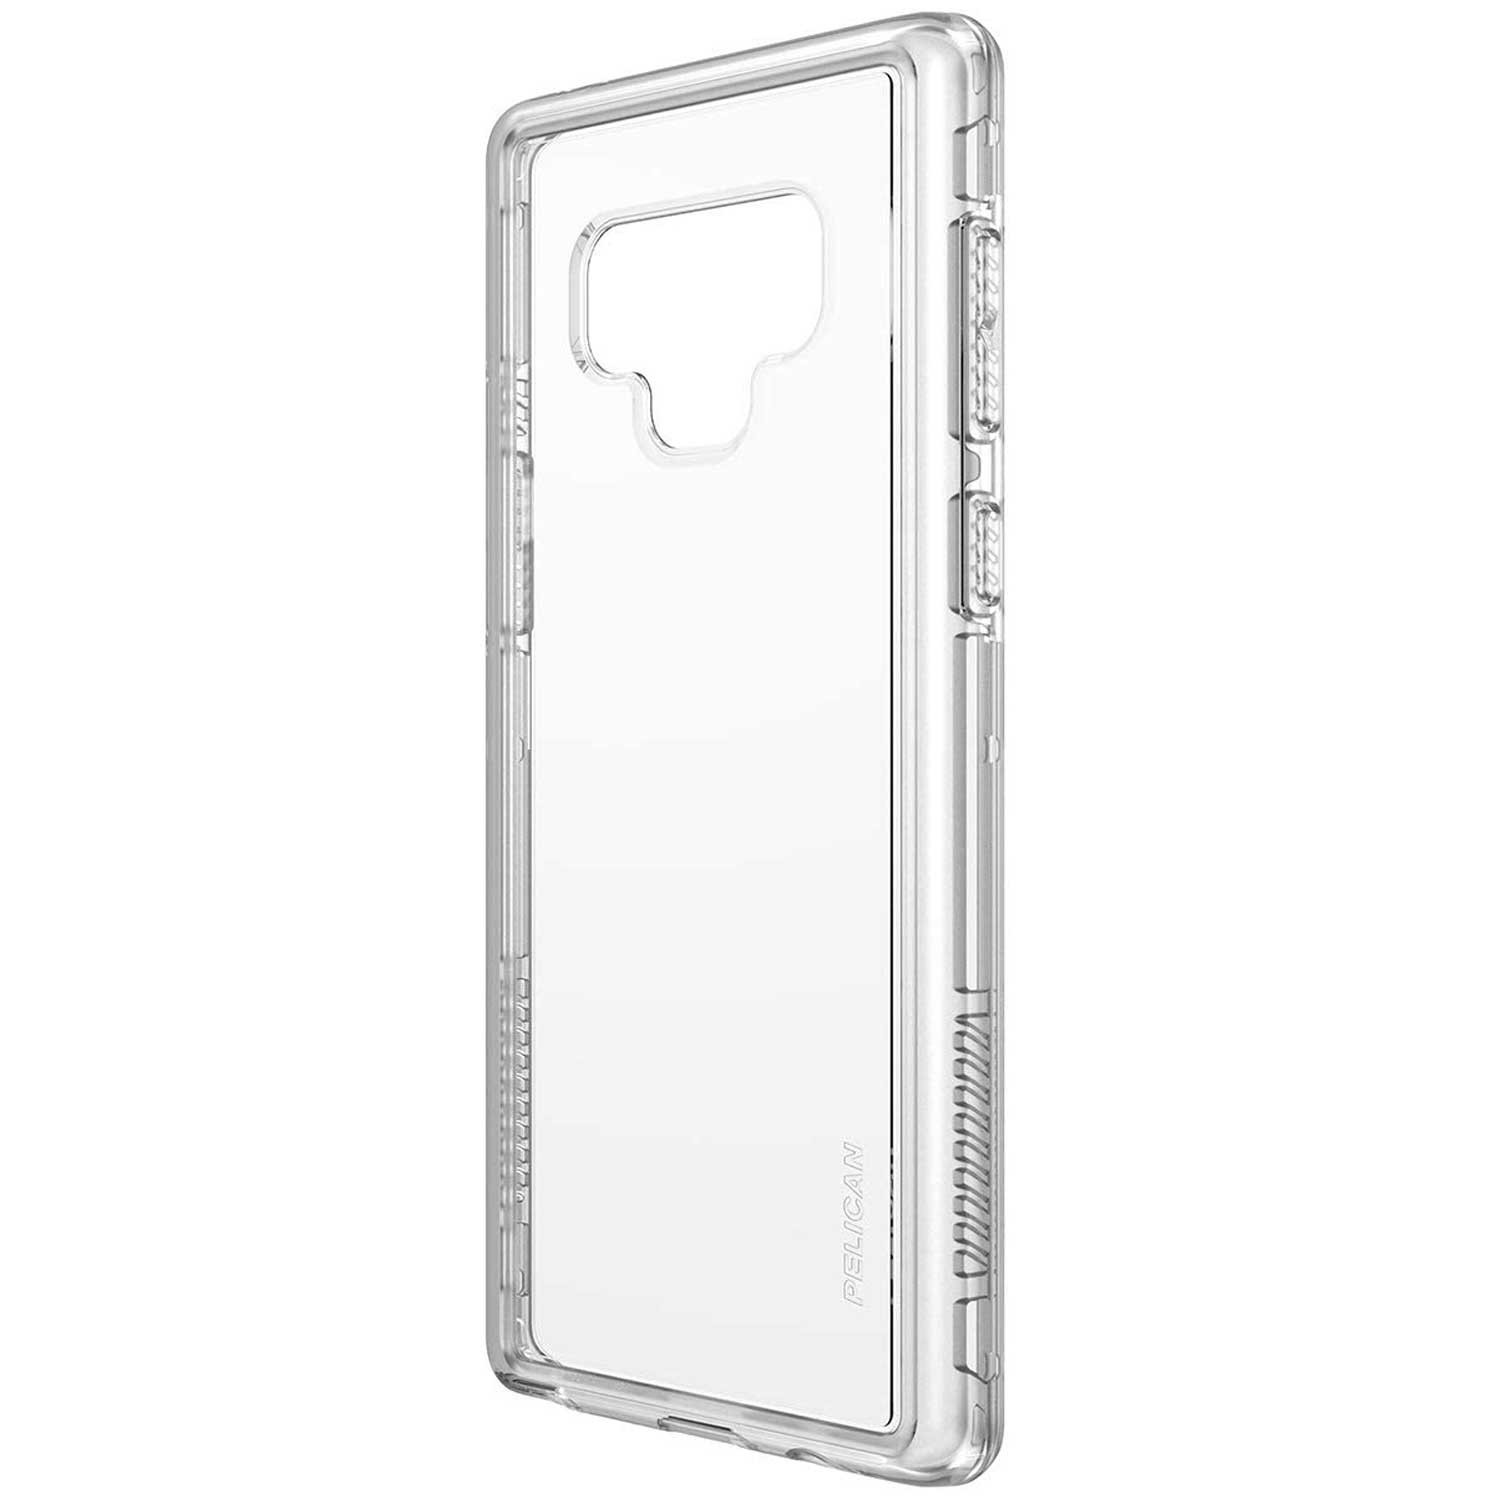 Case - PELICAN Adventurer for Samsung Note 9 Clear